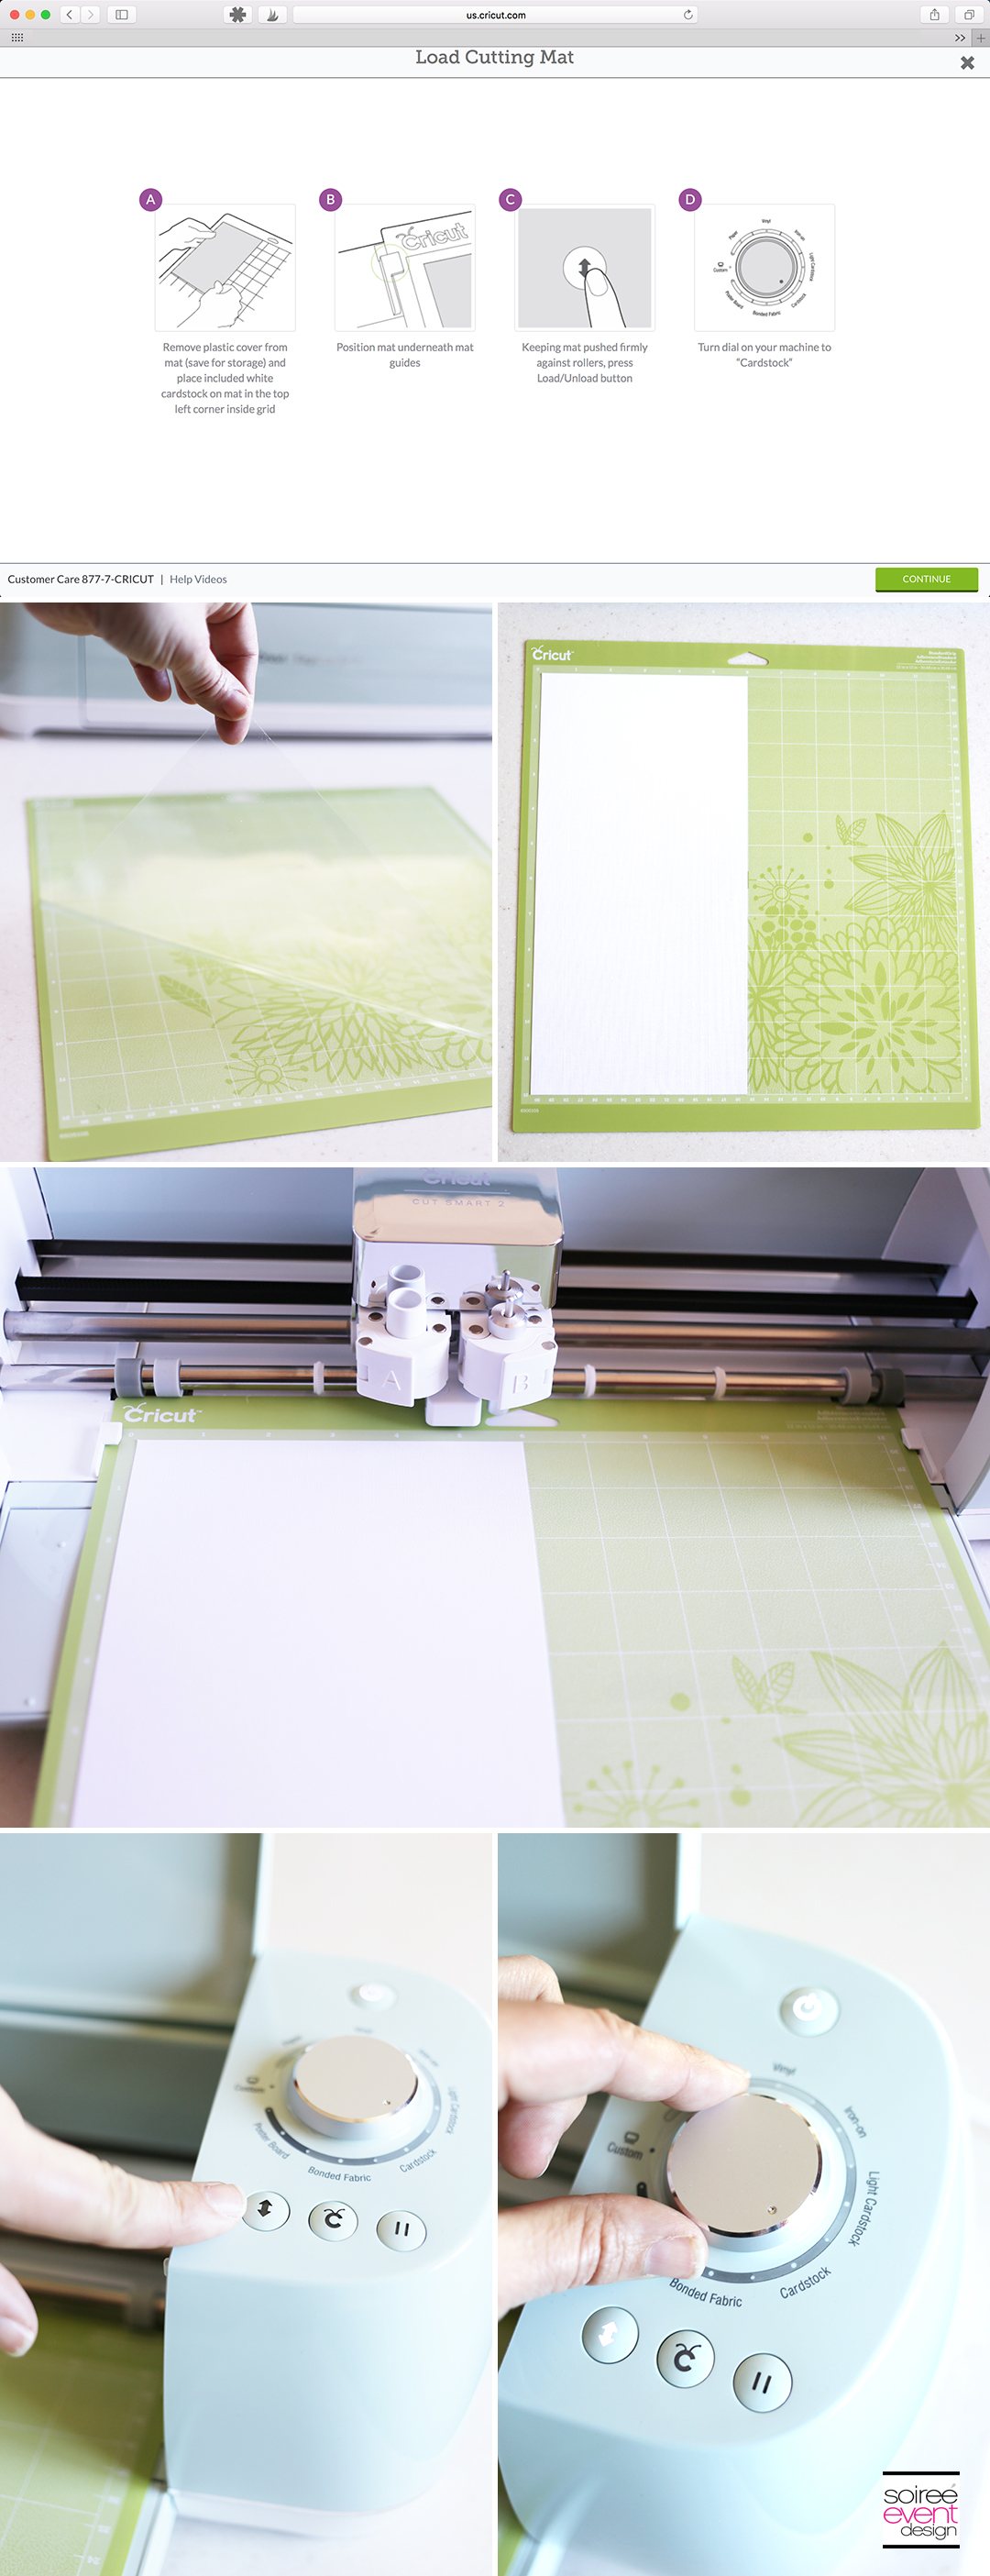 Make a Card with the Cricut Explore Air 2 - Step 2